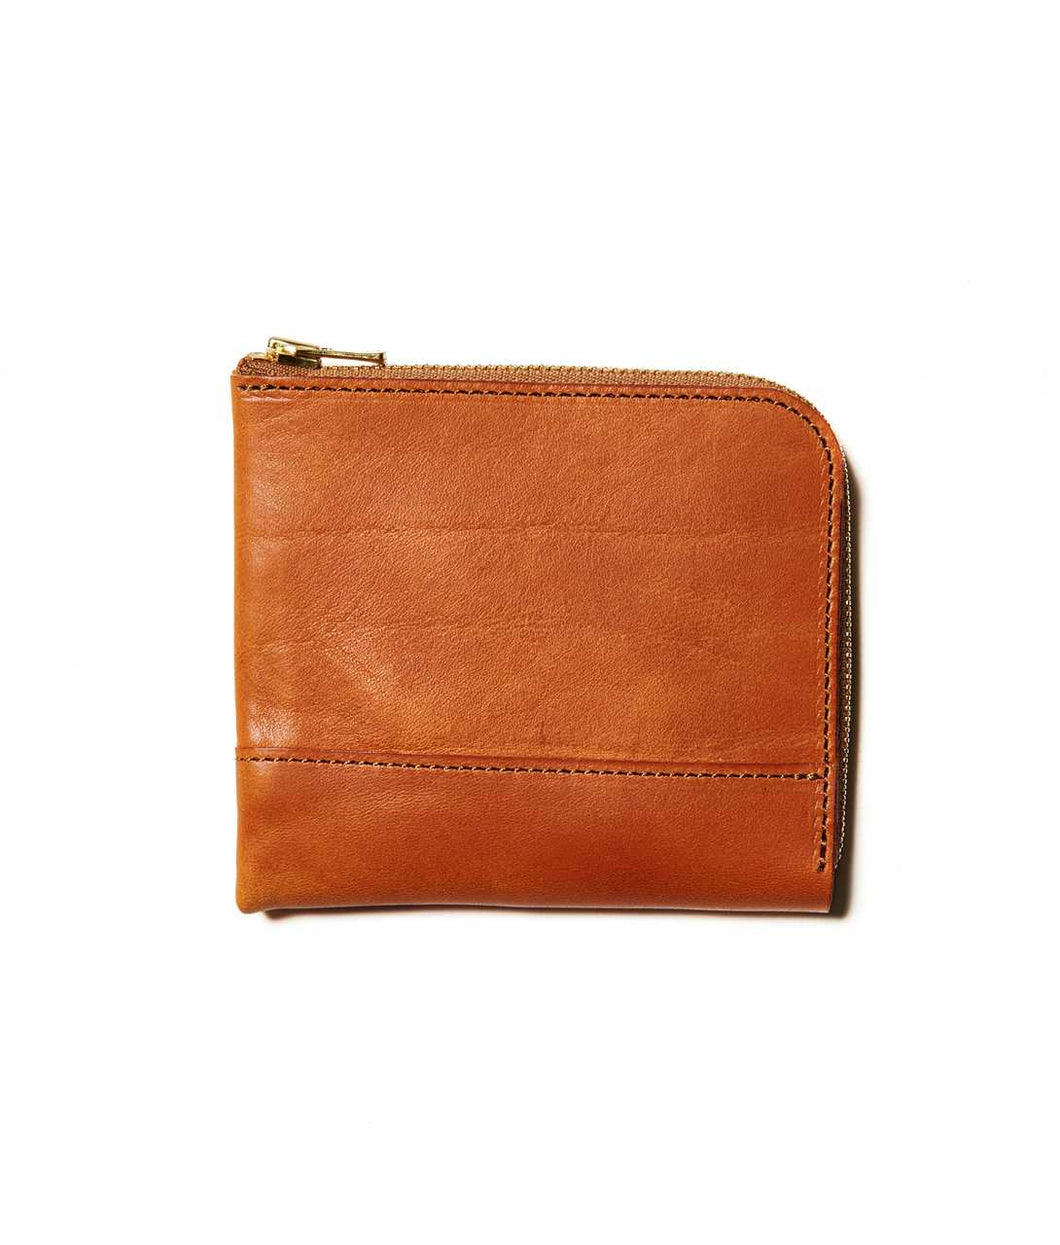 〈LIM DESIGN〉L Zip Small Wallet / Lジップスモールウォレット (BROWN)